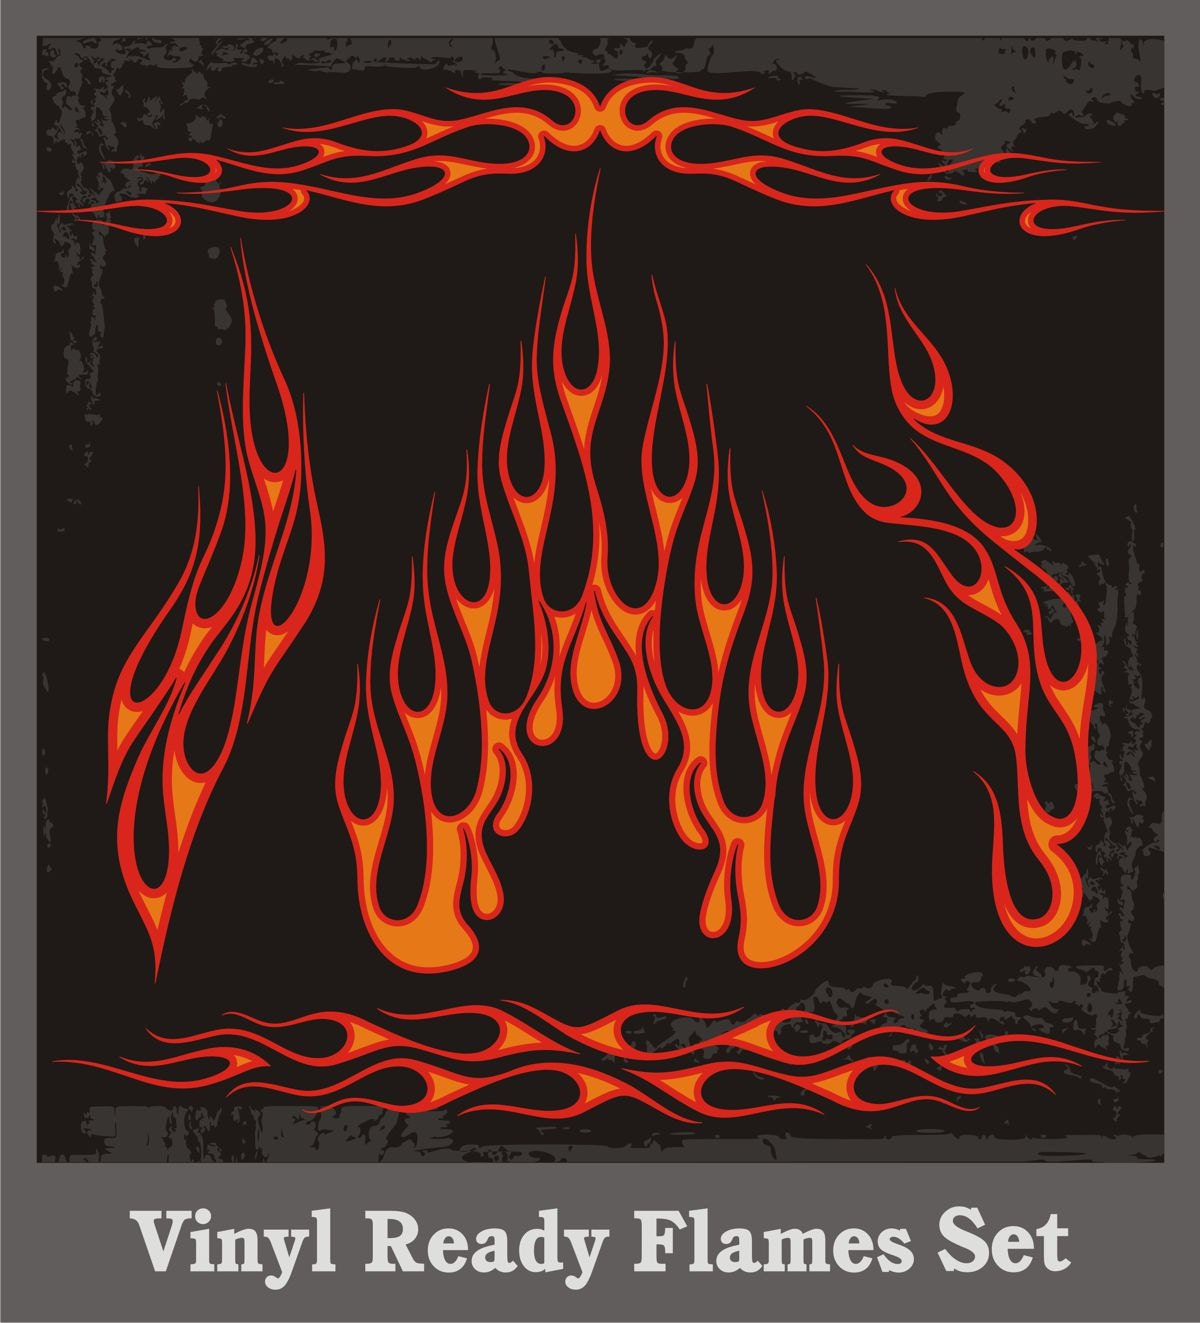 Motorbike Wall Stickers A Set Of Vinyl Ready Flames Vector Clipart Vehicle